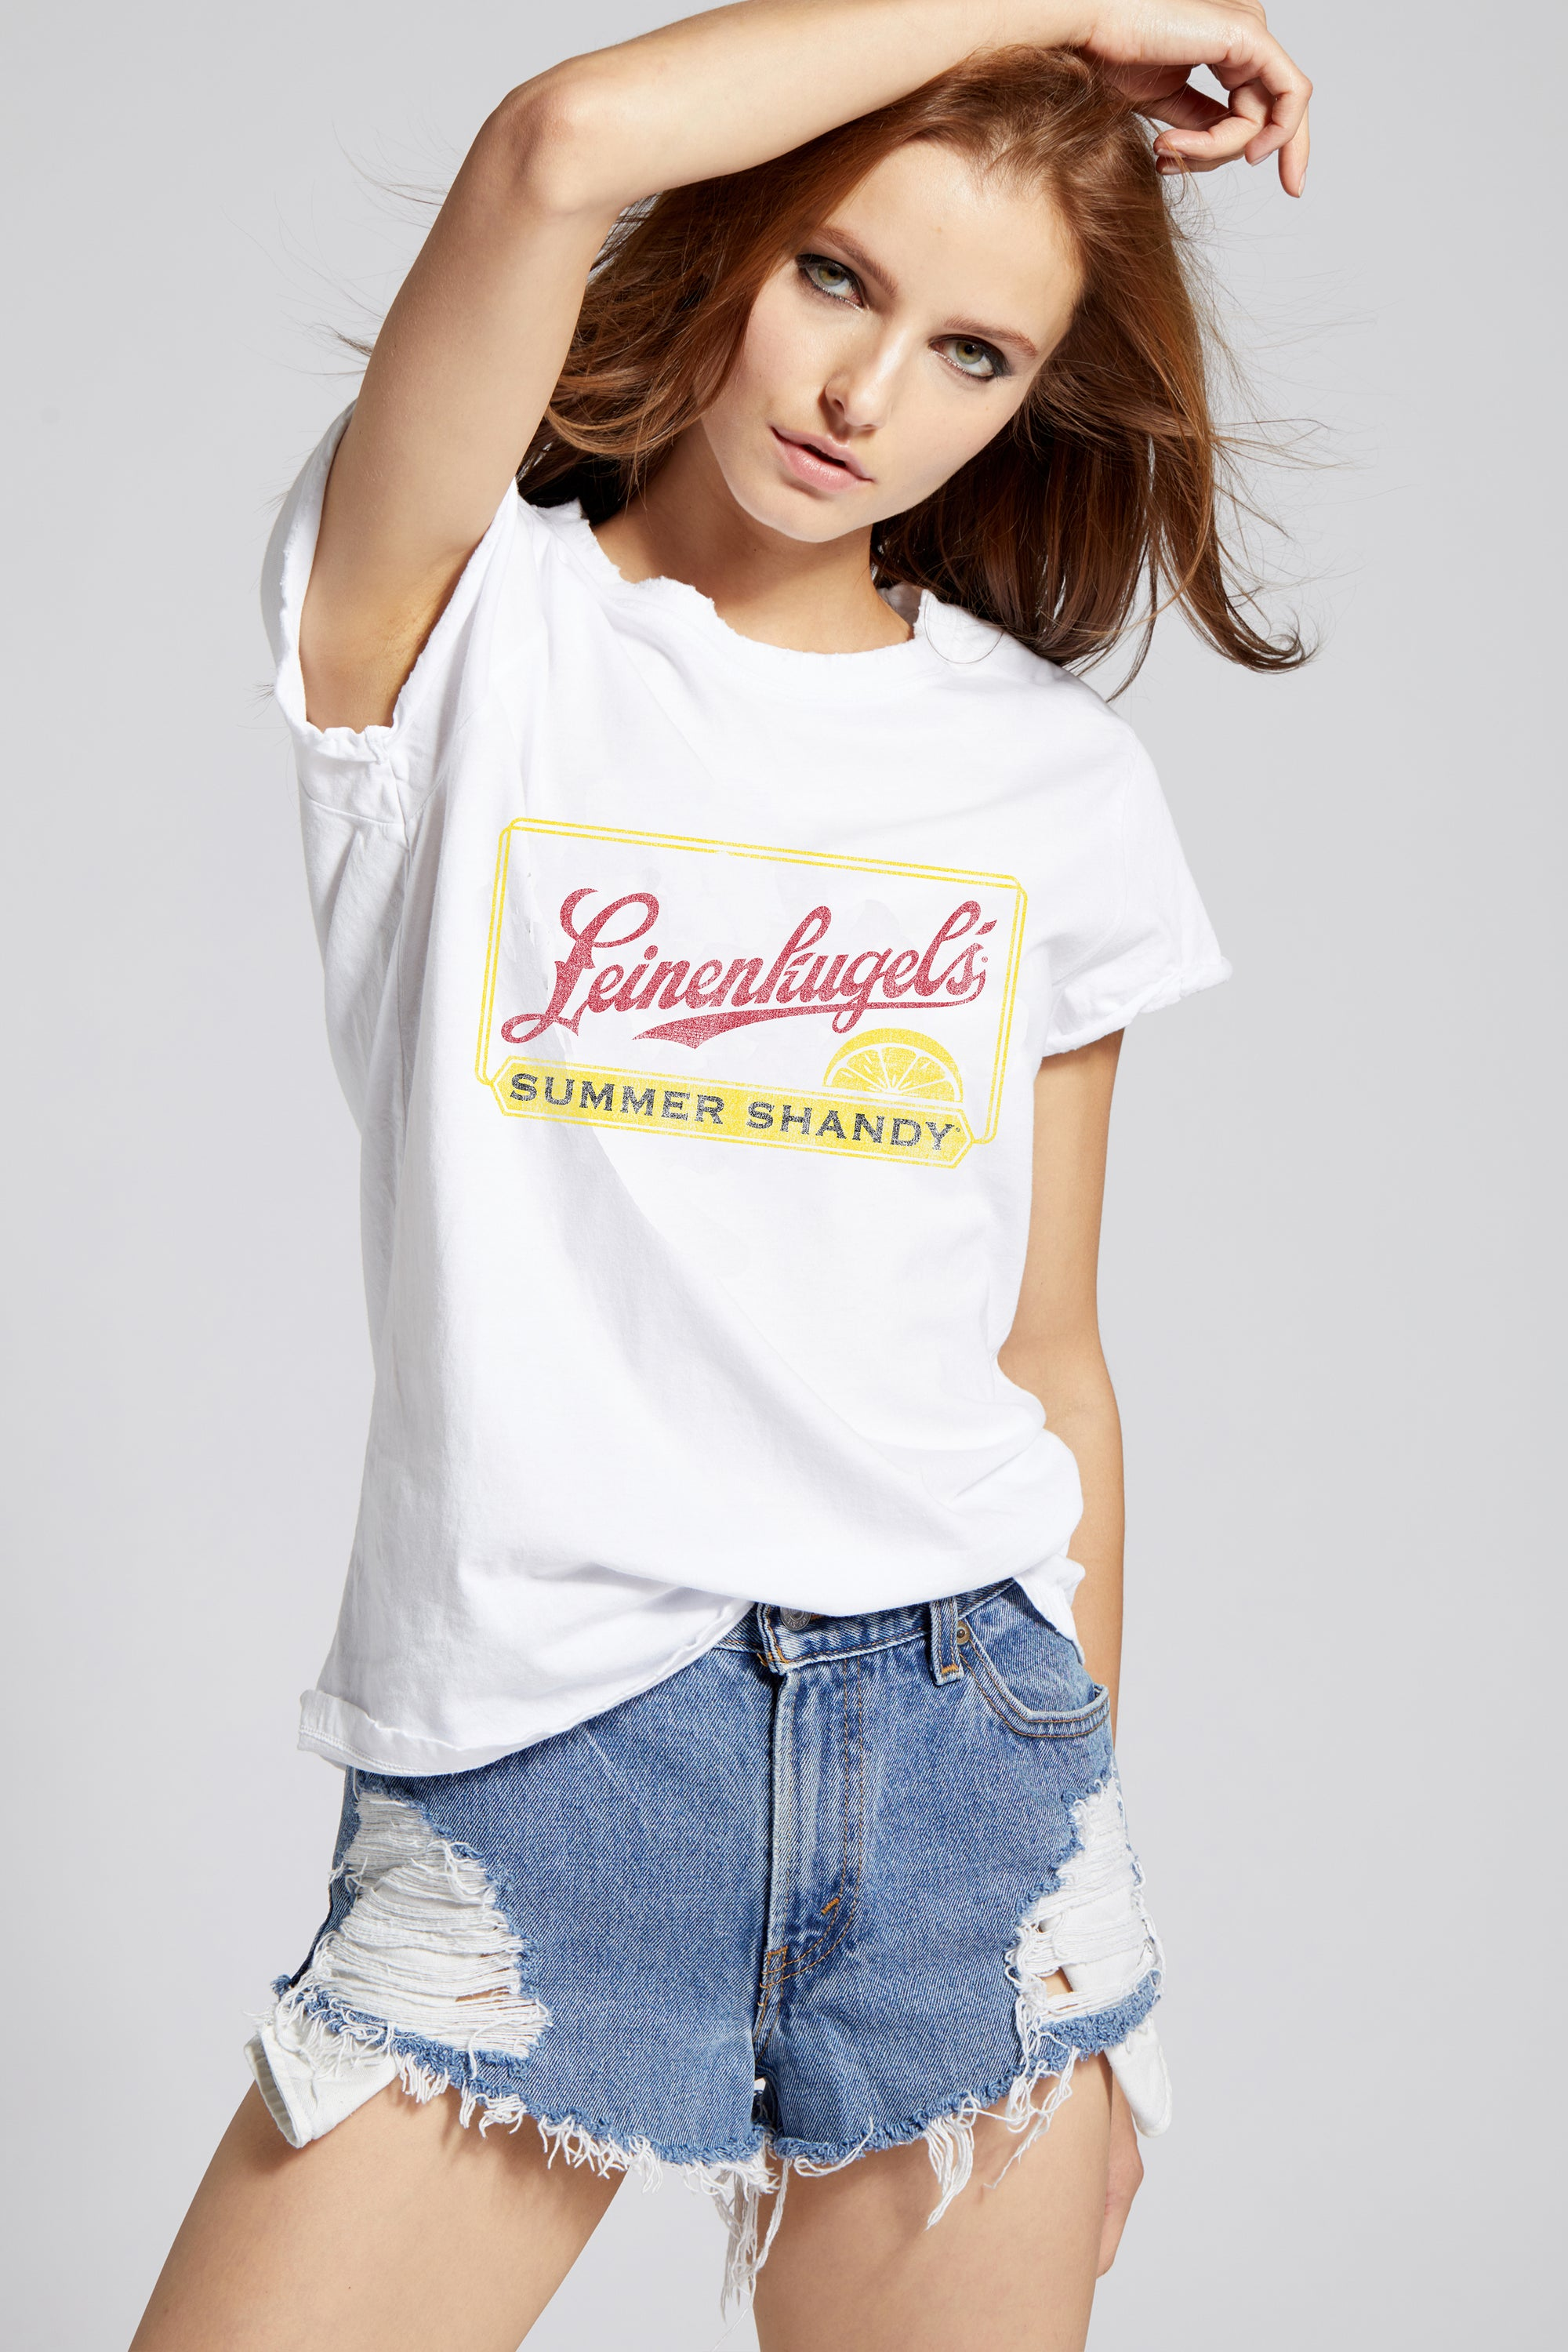 Leinenkugel's Summer Shandy Tee